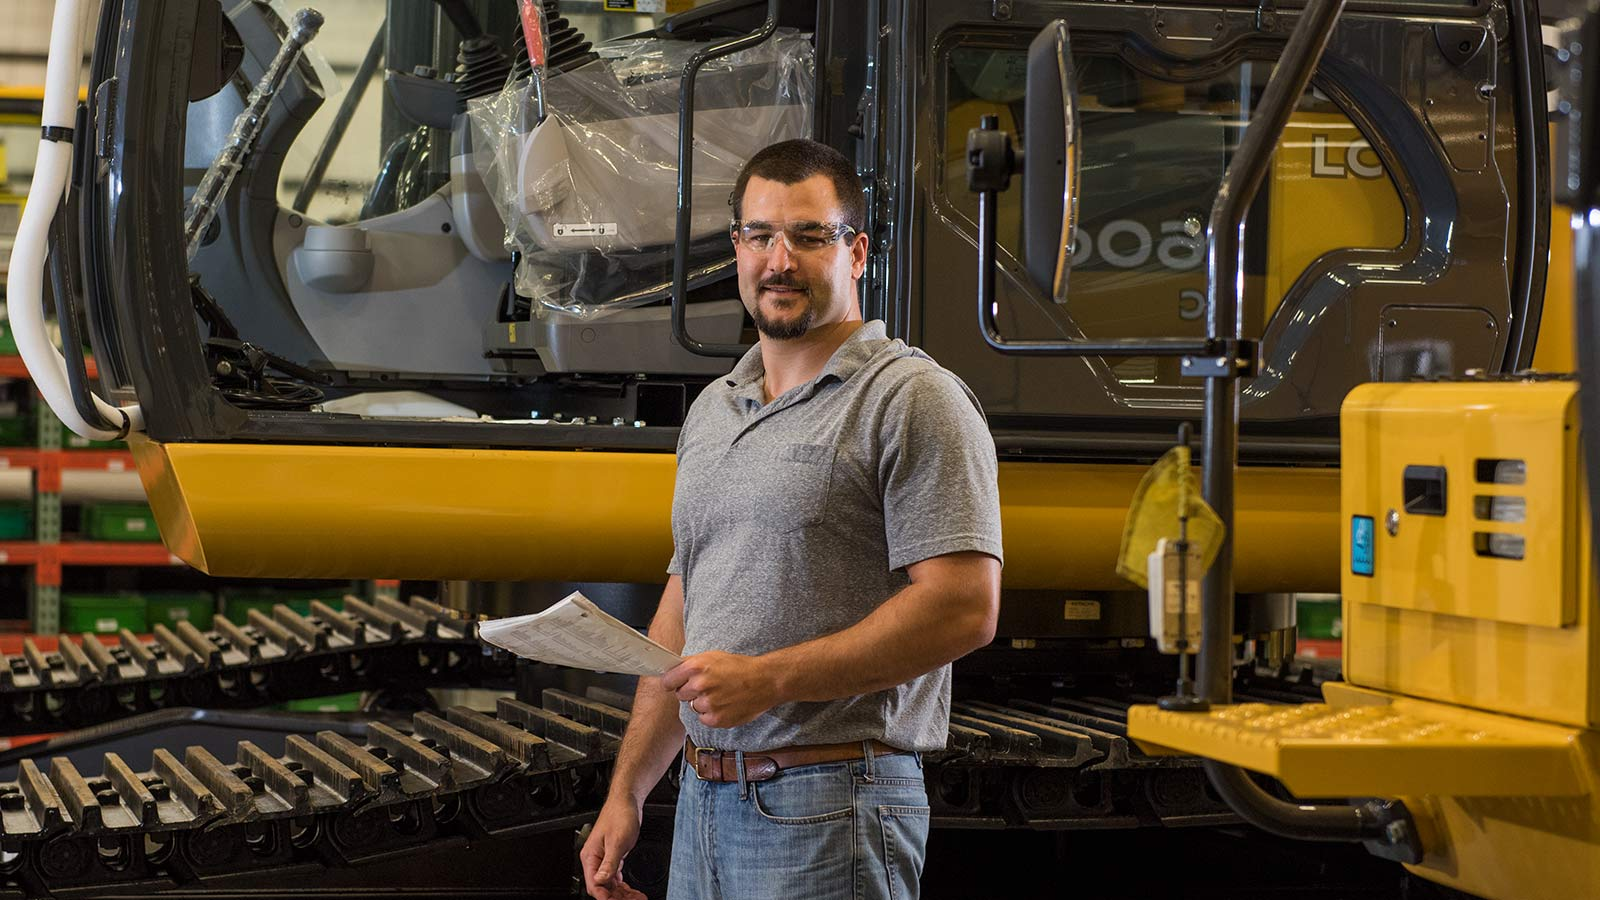 Jacob Henderson, a Product Development Process Design Engineer, shown working in the Deere-Hitachi factory in front of a John Deere excavator